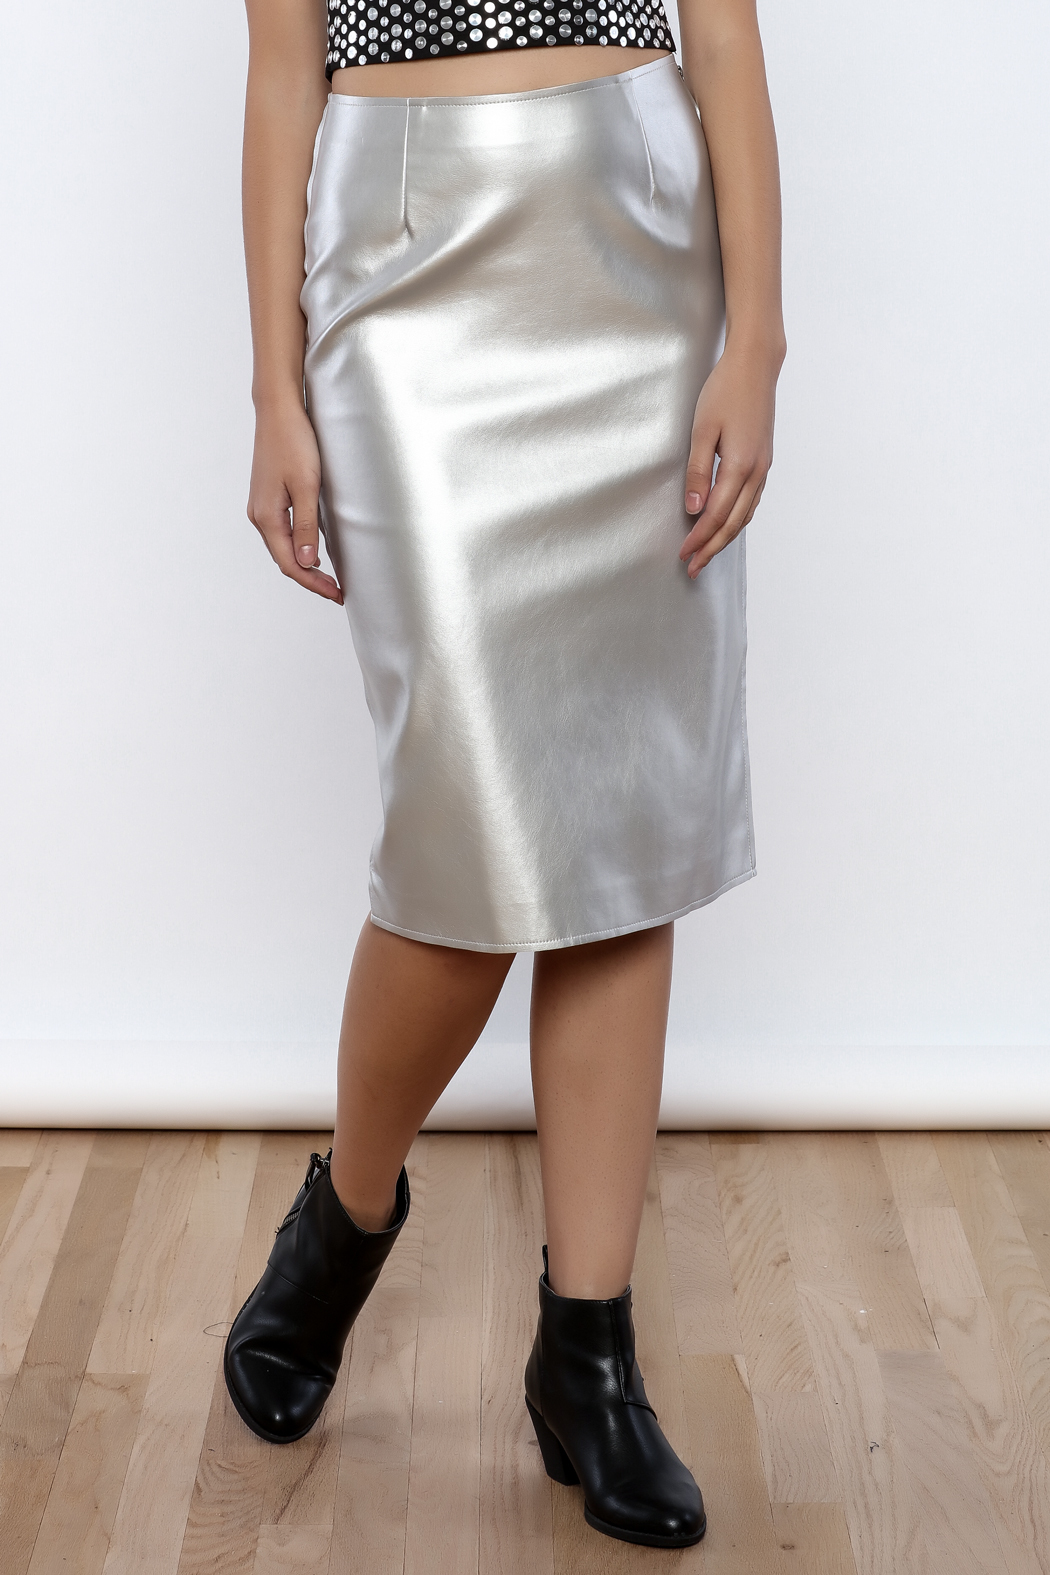 J.O.A. FAux Leather Pencil Skirt - Main Image